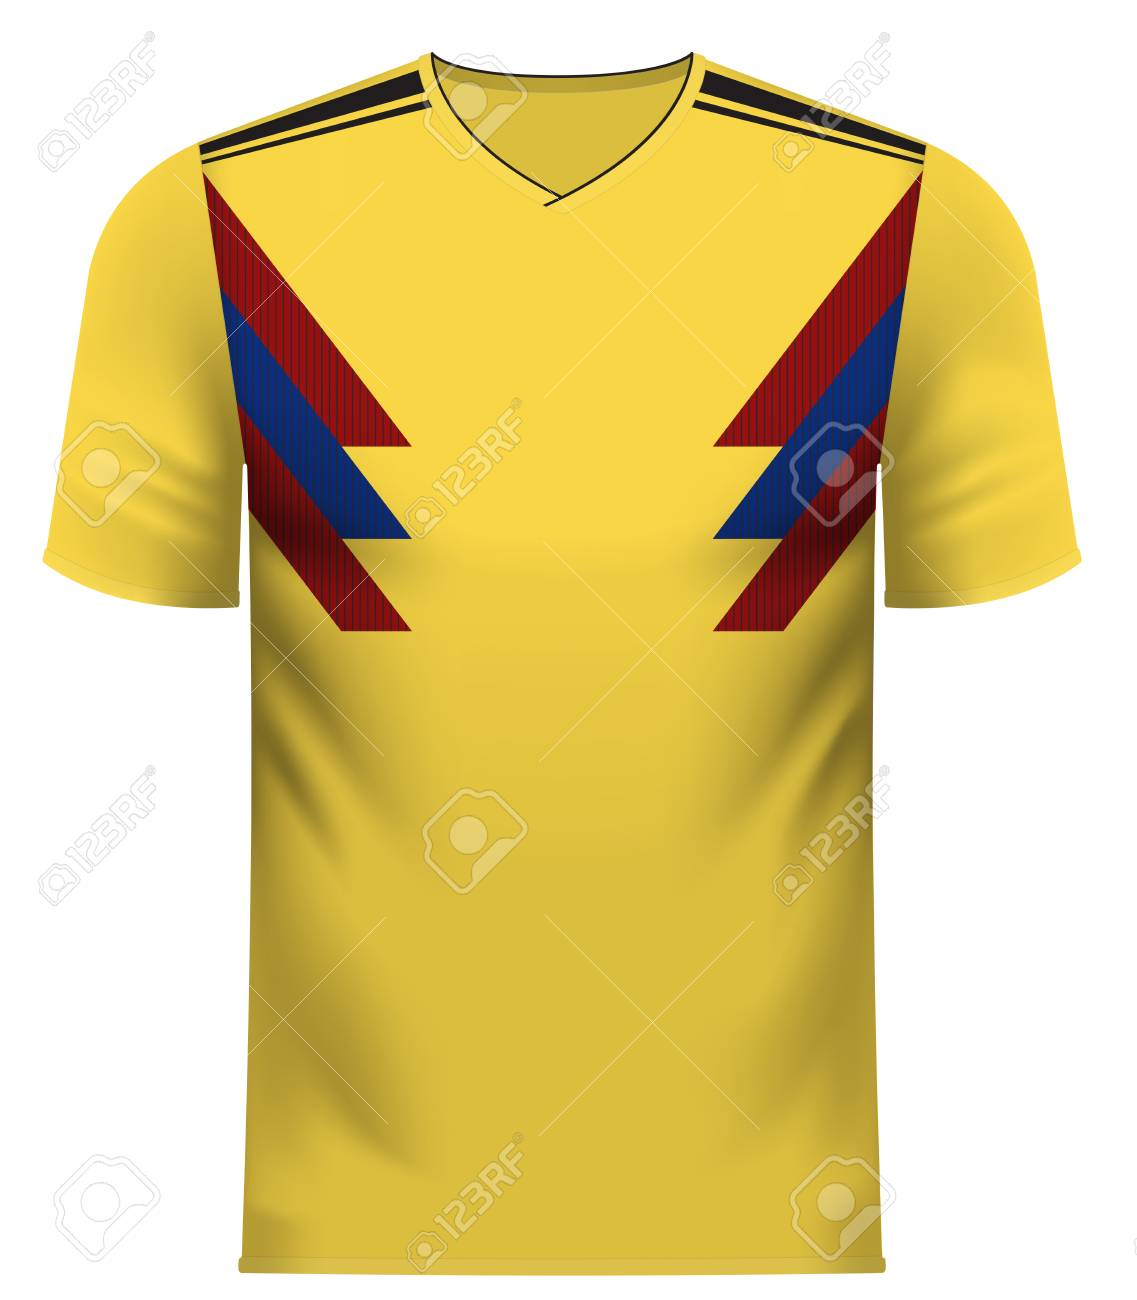 promo code af81b 1d305 Colombia national soccer team shirt in generic country colors..